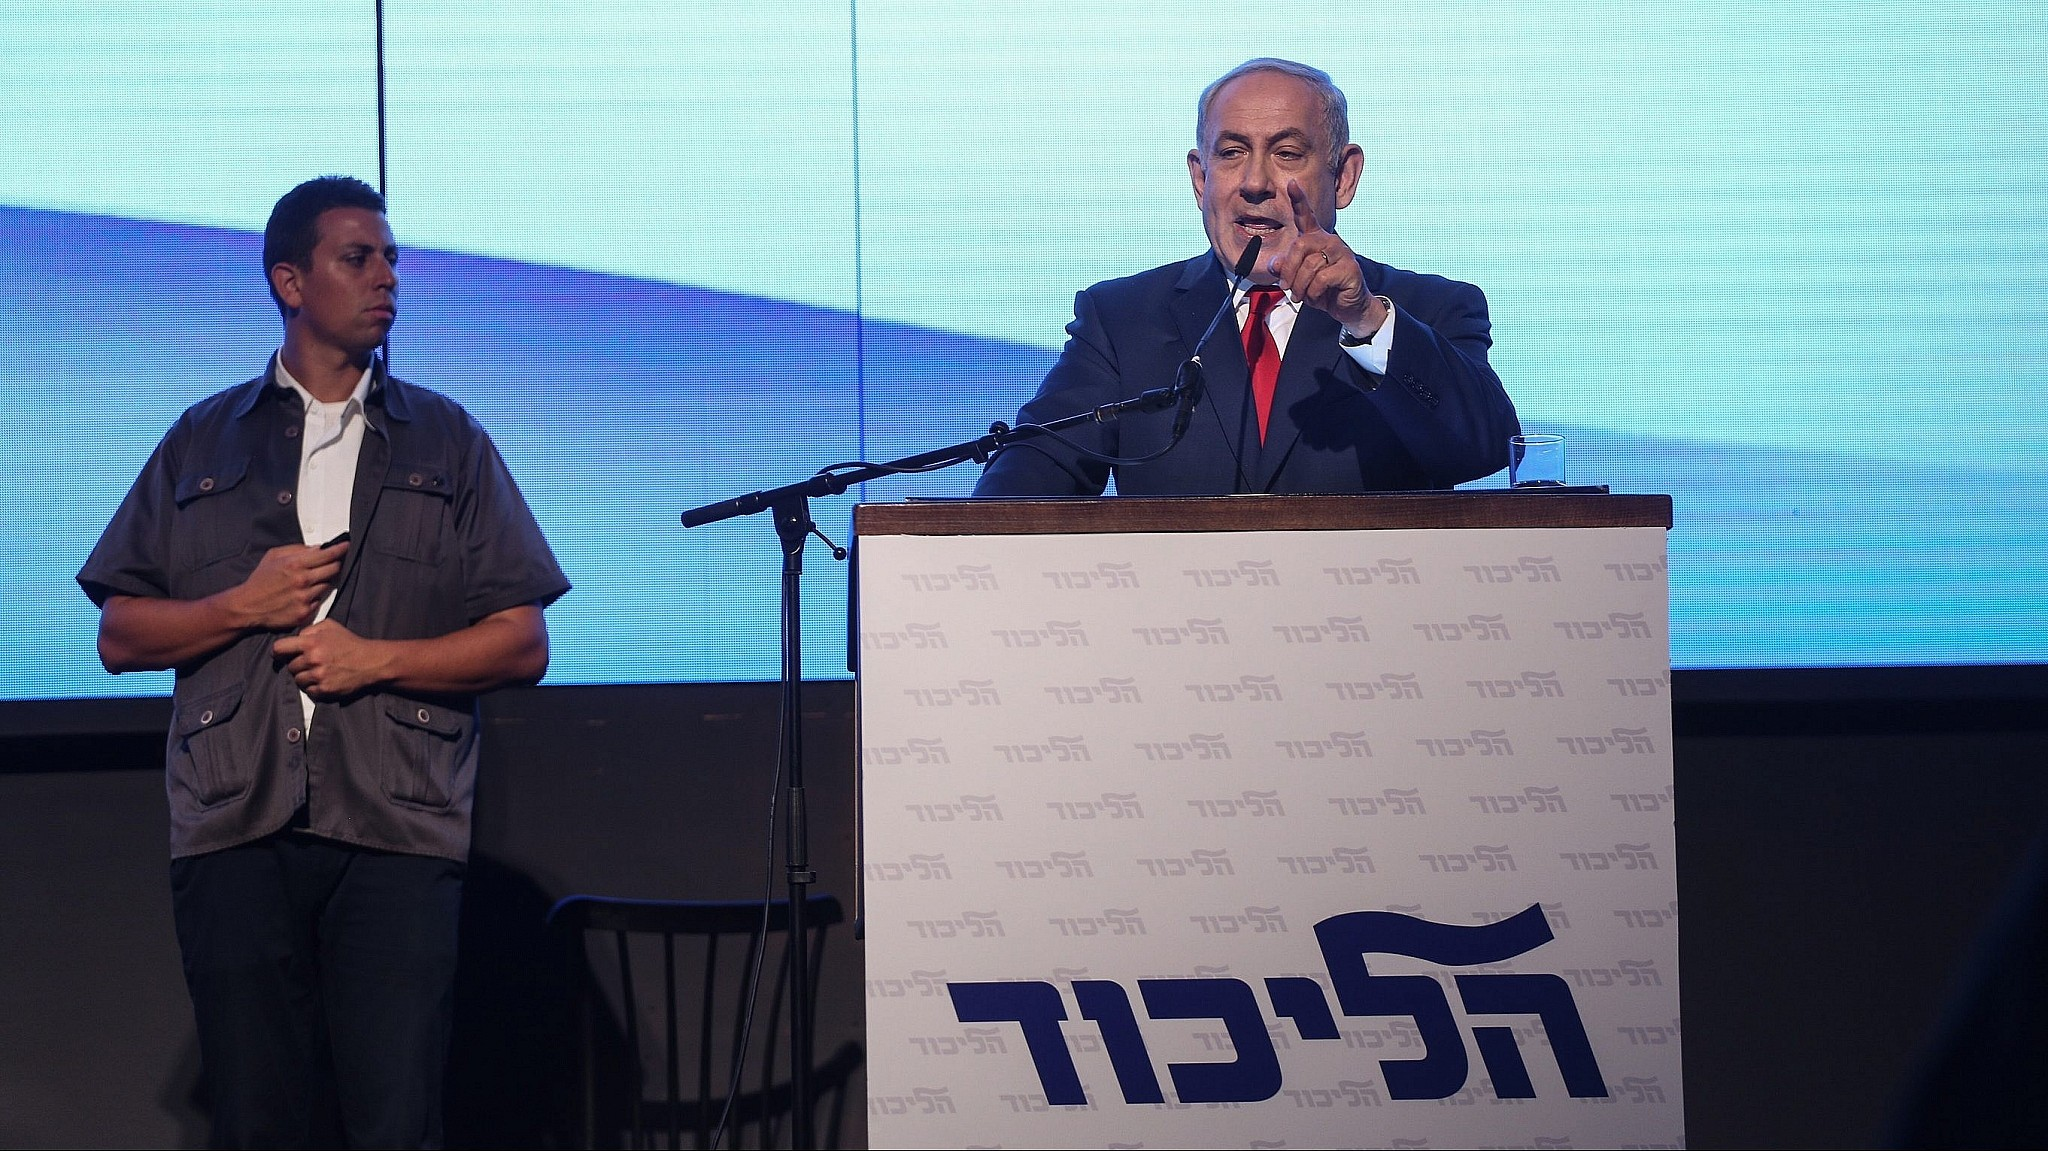 Prime Minister Benjamin Netanyahu speaks at a Likud party rally in Airport City on August 30, 2017. (Miriam Alster/Flash90)